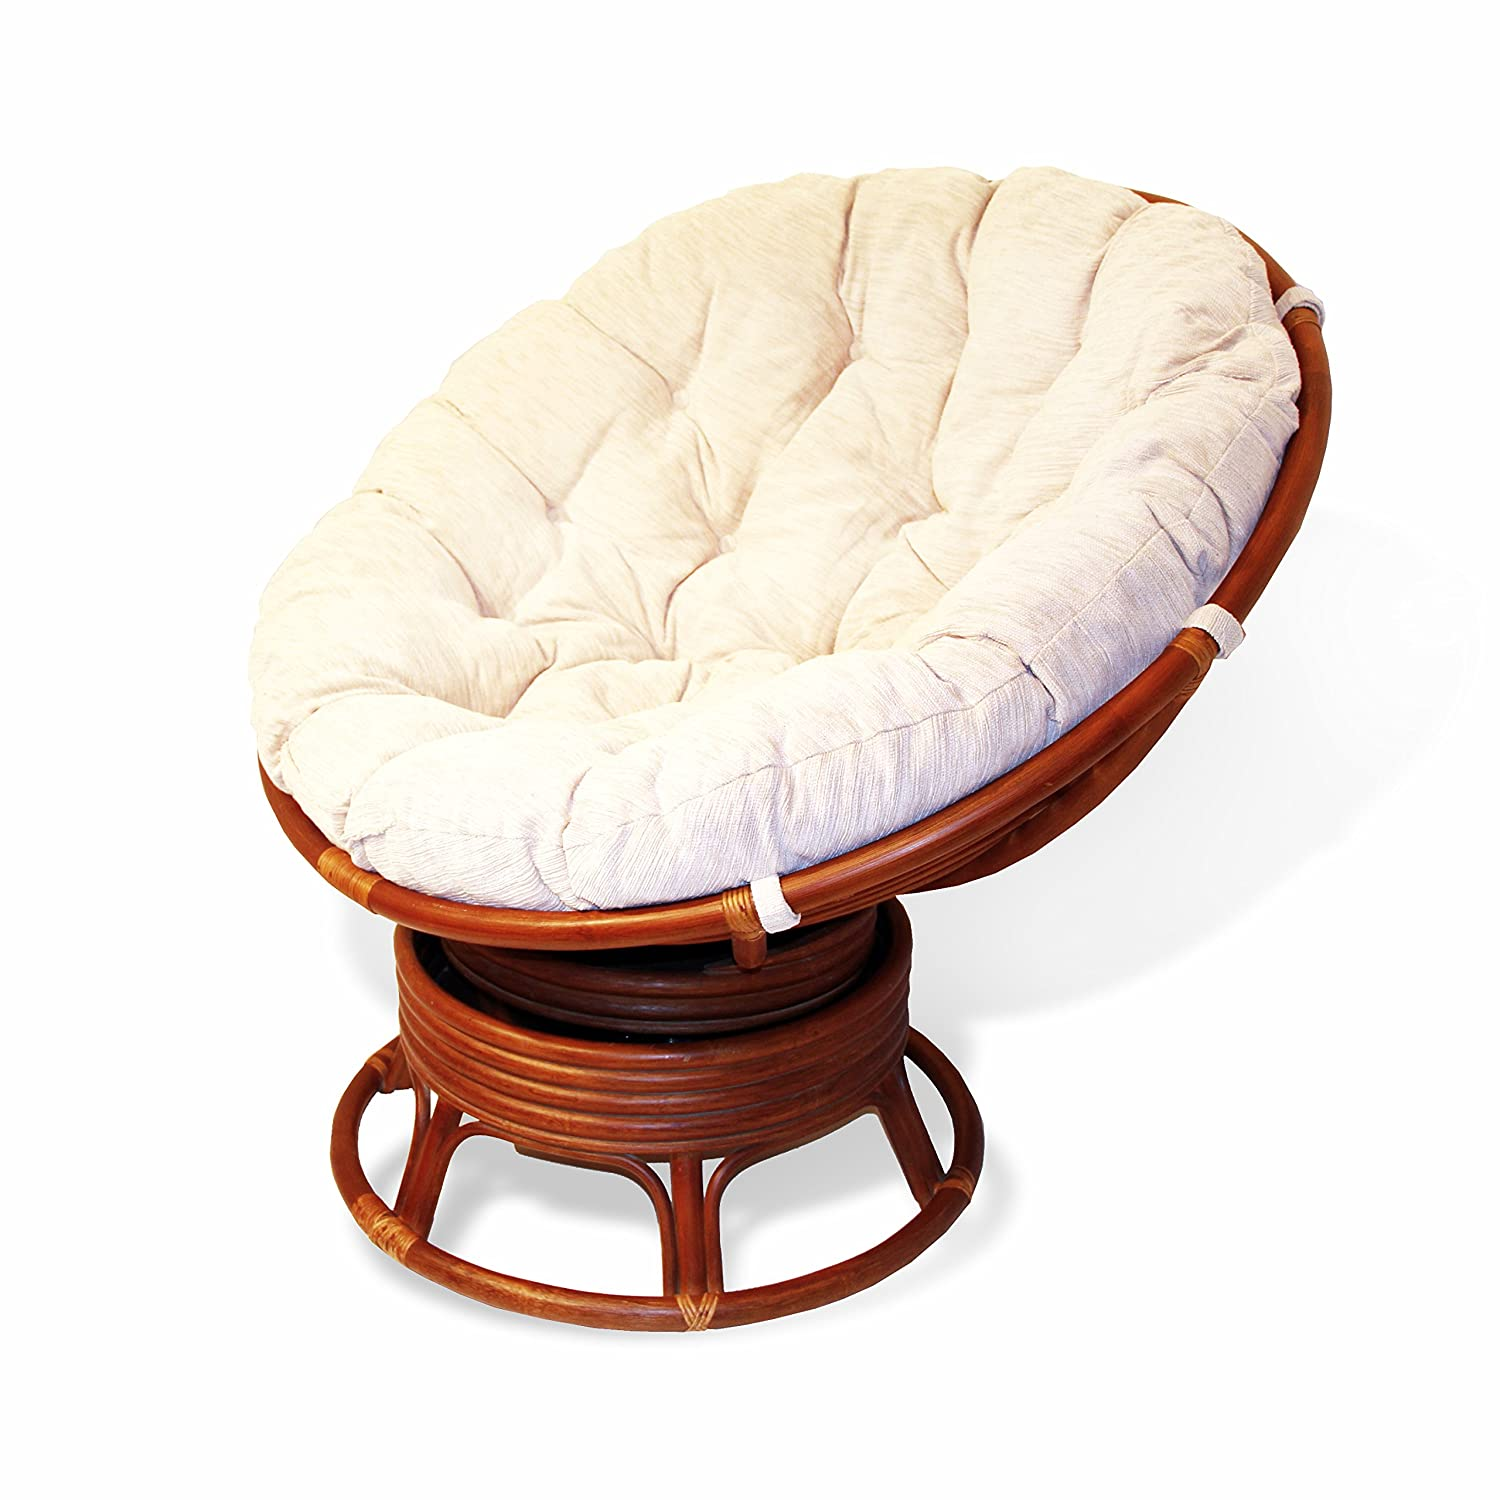 Swell Rattan Wicker Swivel Rocking Round Papasan Chair With Cushion Colonial Light Brown Dailytribune Chair Design For Home Dailytribuneorg